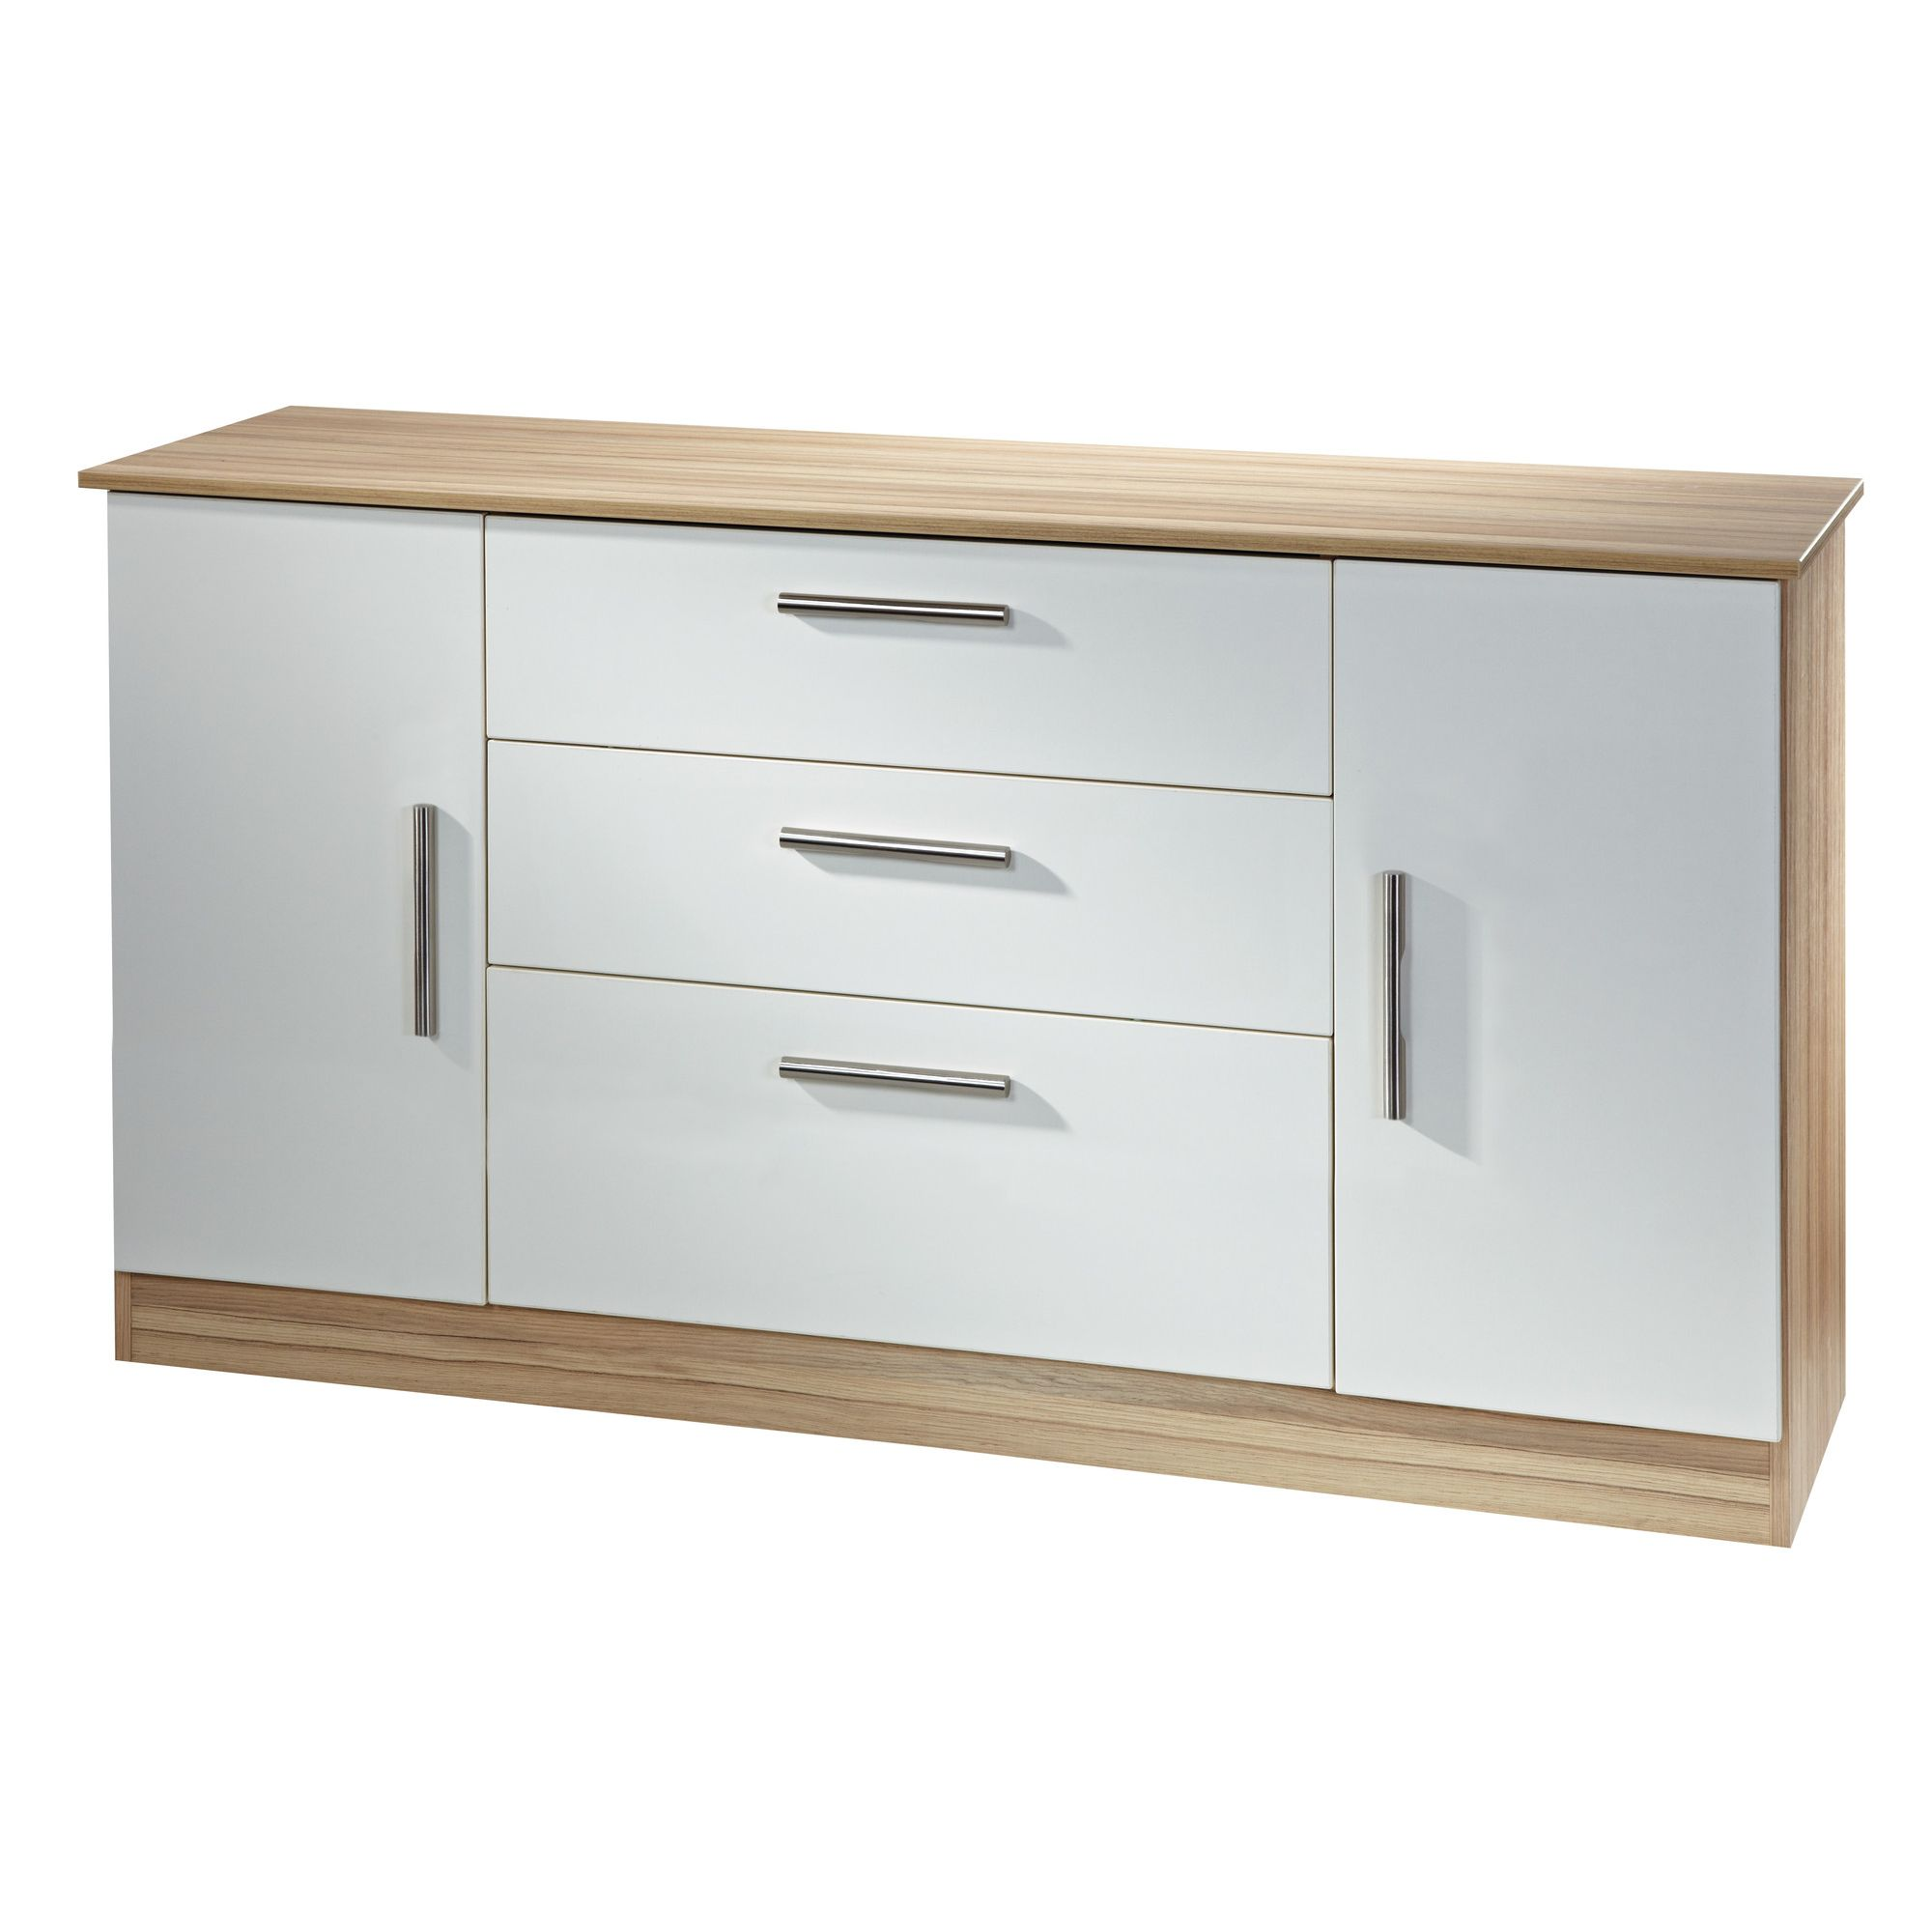 Welcome Furniture Living Room Wide 2 Door / 3 Drawer Unit - Modern Oak at Tesco Direct